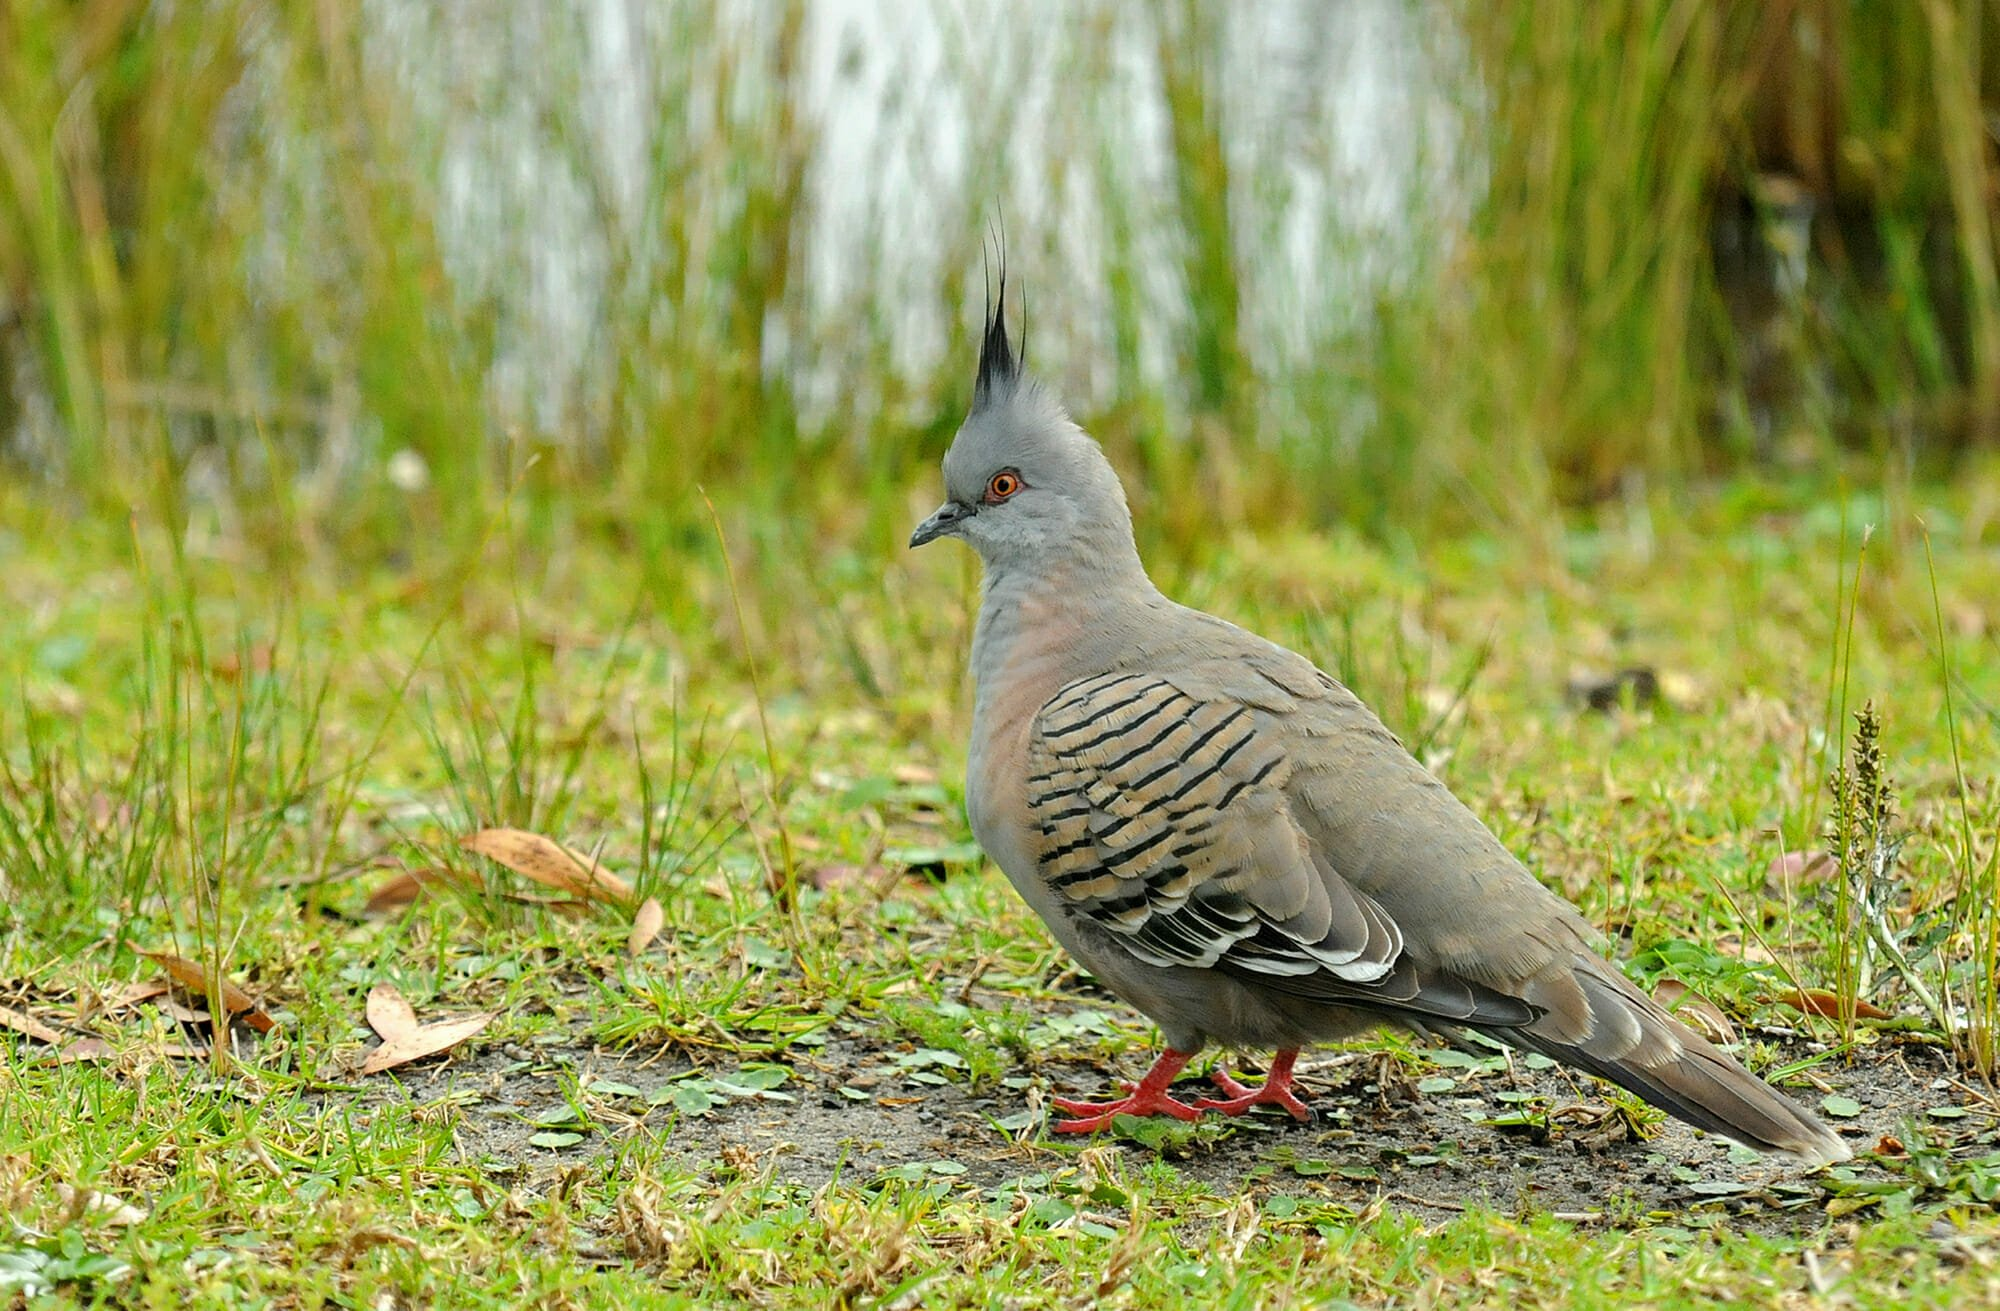 Crested pigeon in Sydney Olympic Park